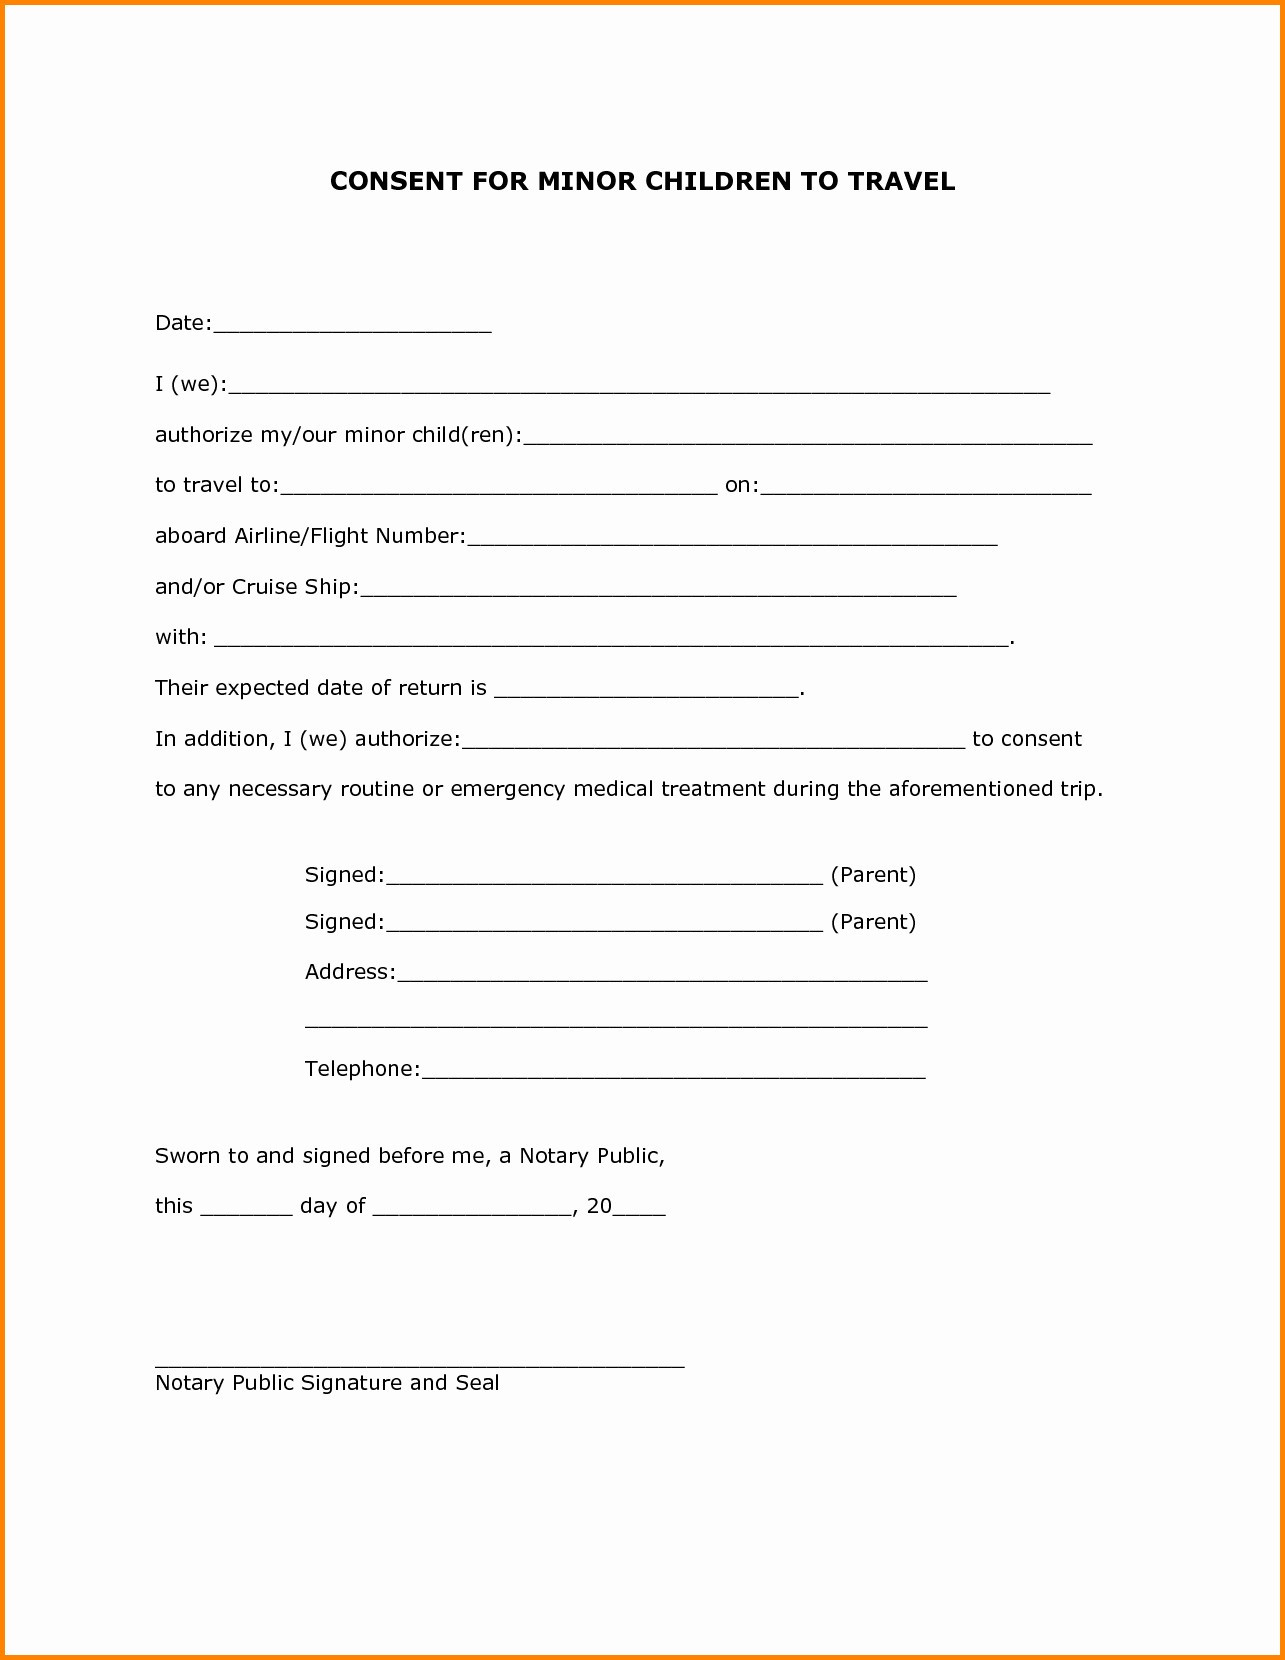 Child Travel Consent Letter Template - Parental Consent form Template Elegant Travel Consent Letter Best